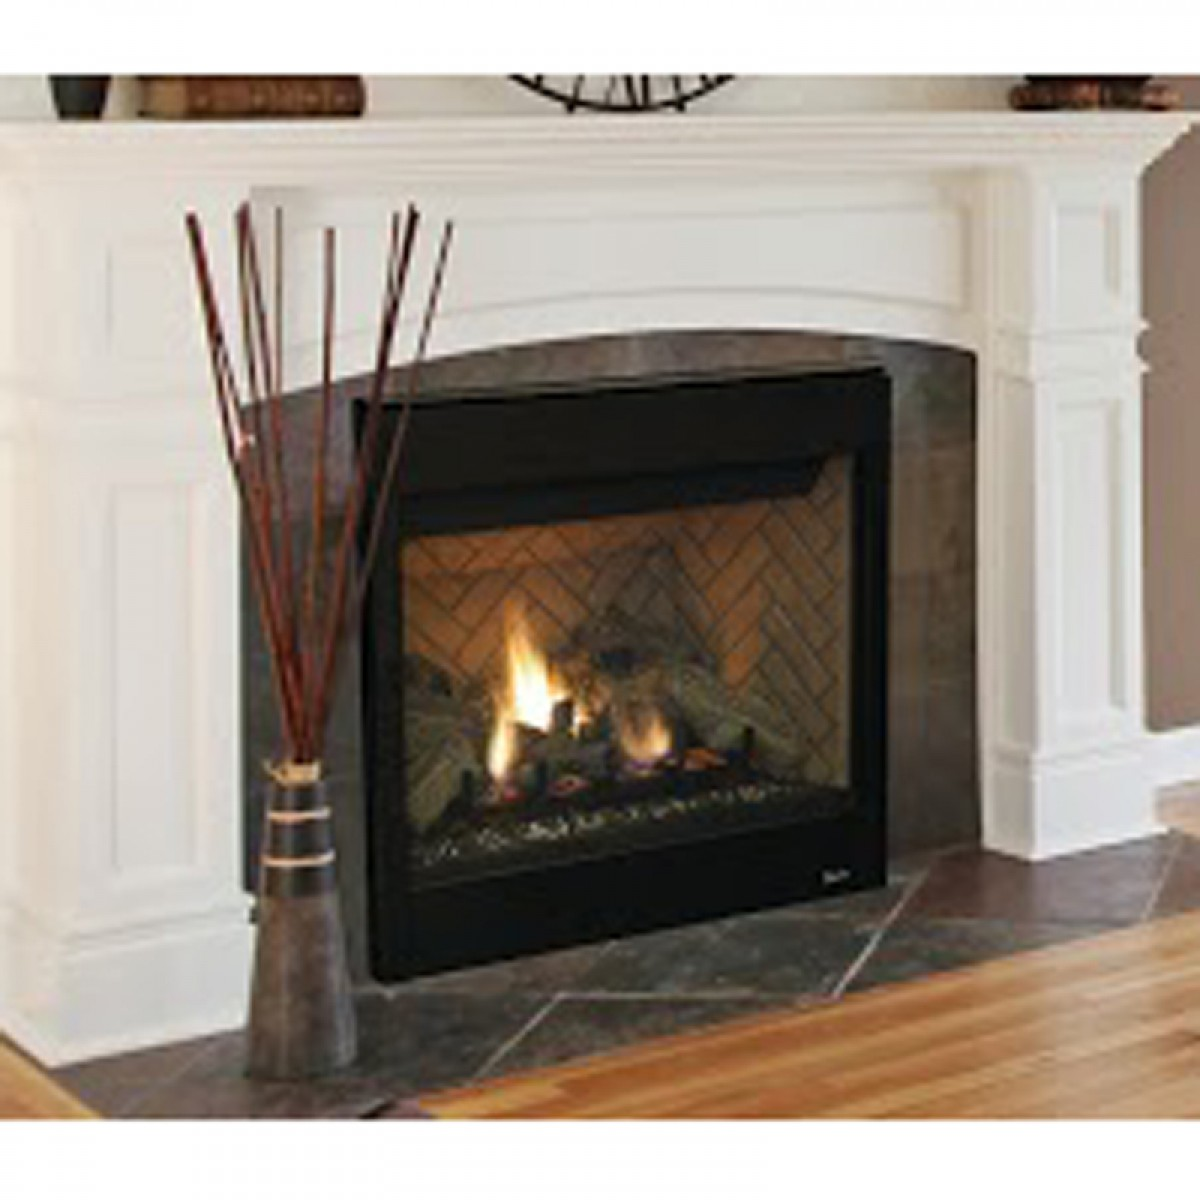 IHP Superior DRT6300 Direct Vent Gas Fireplace